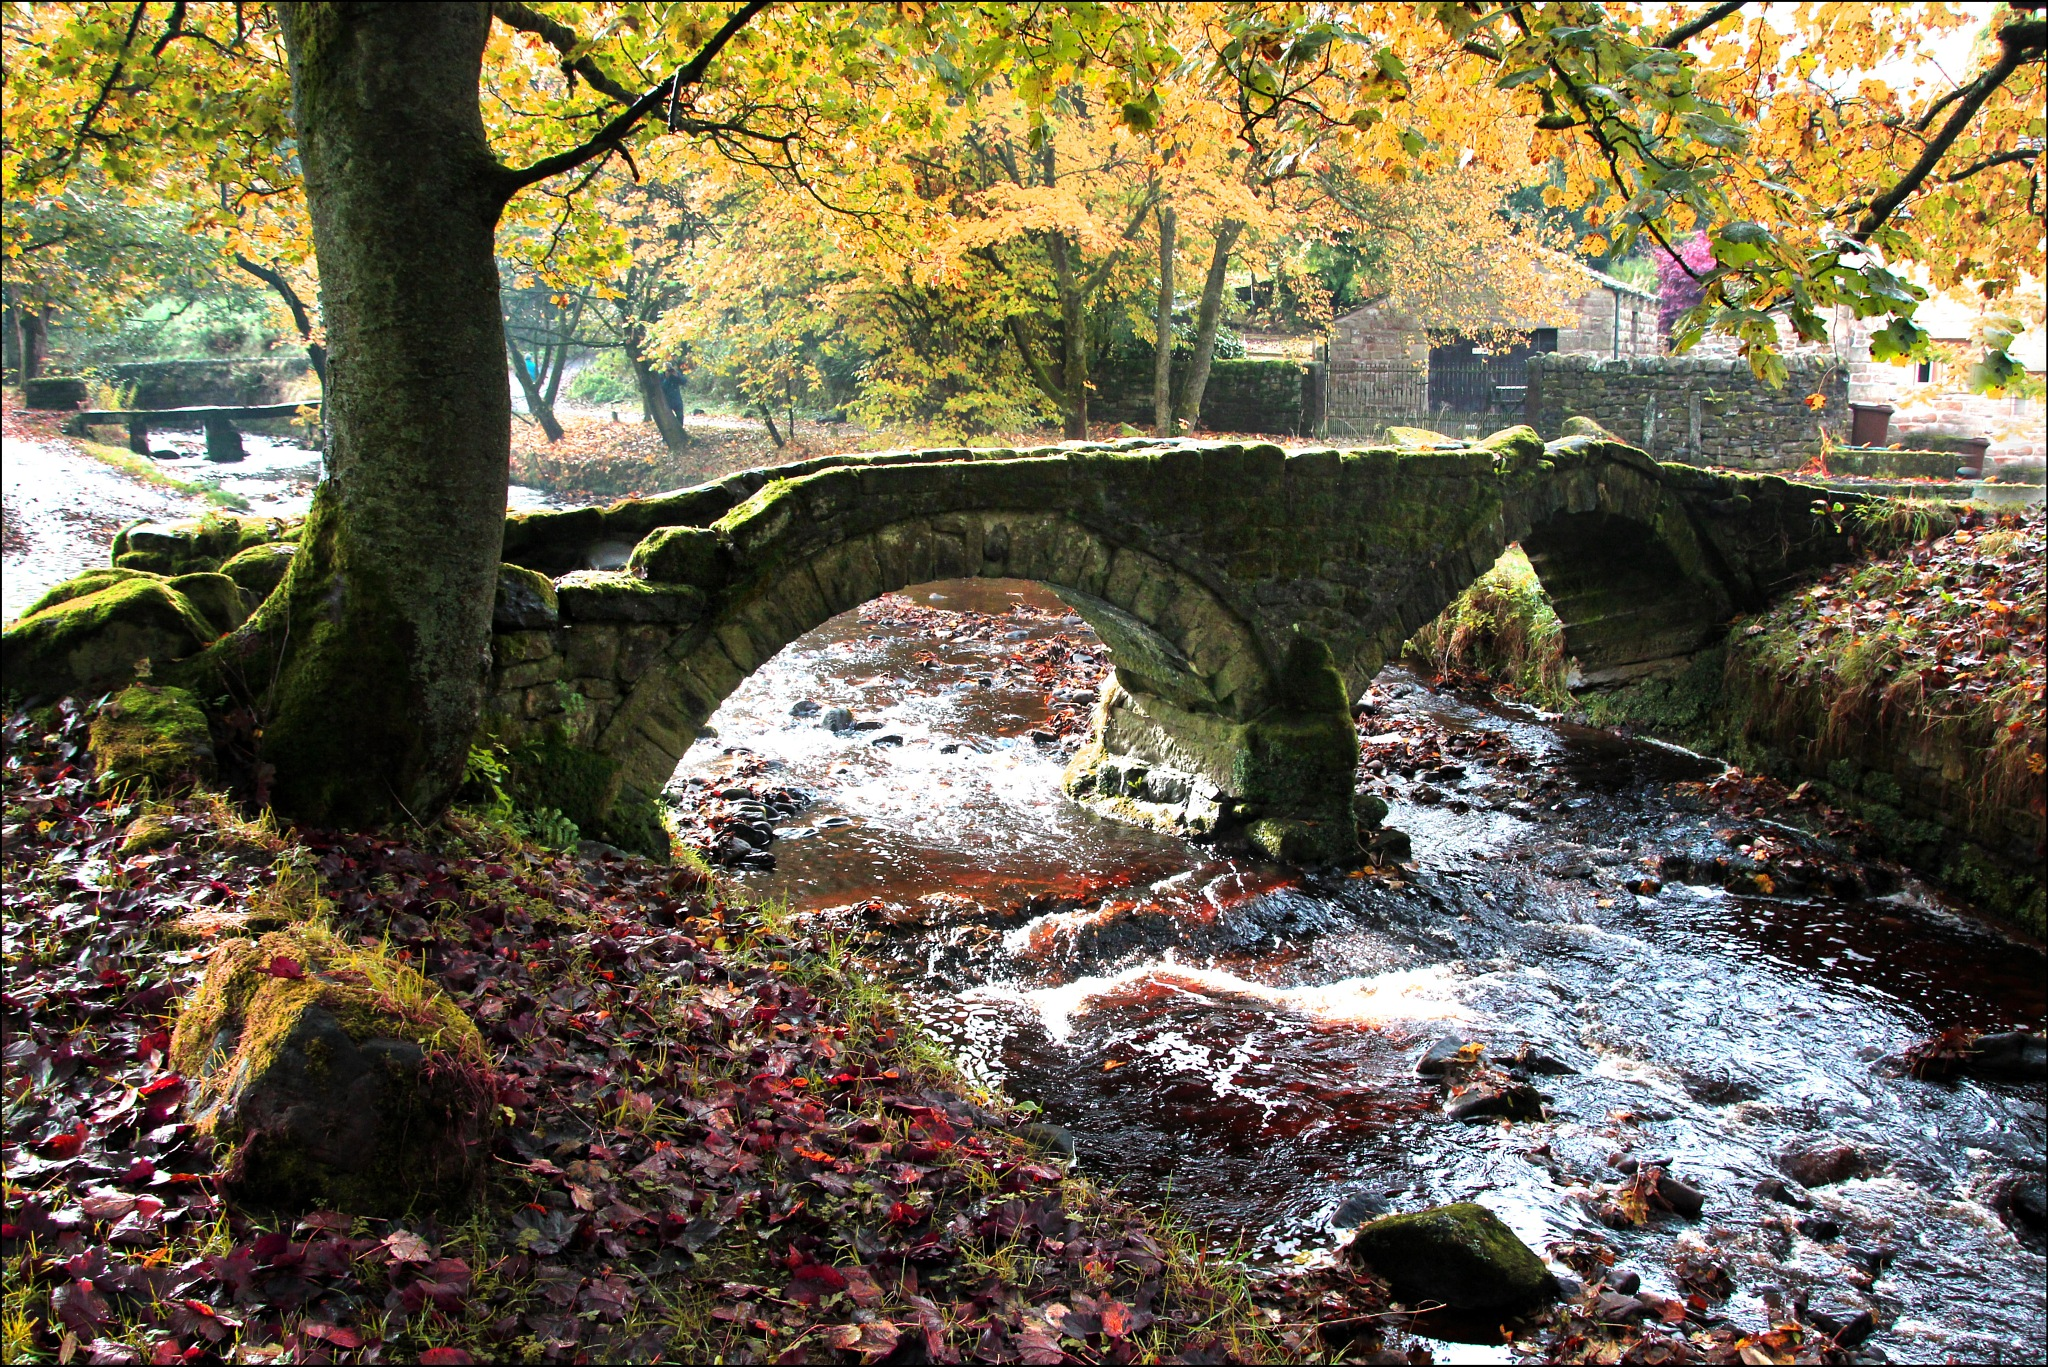 The old bridge Wycoller by TOZ